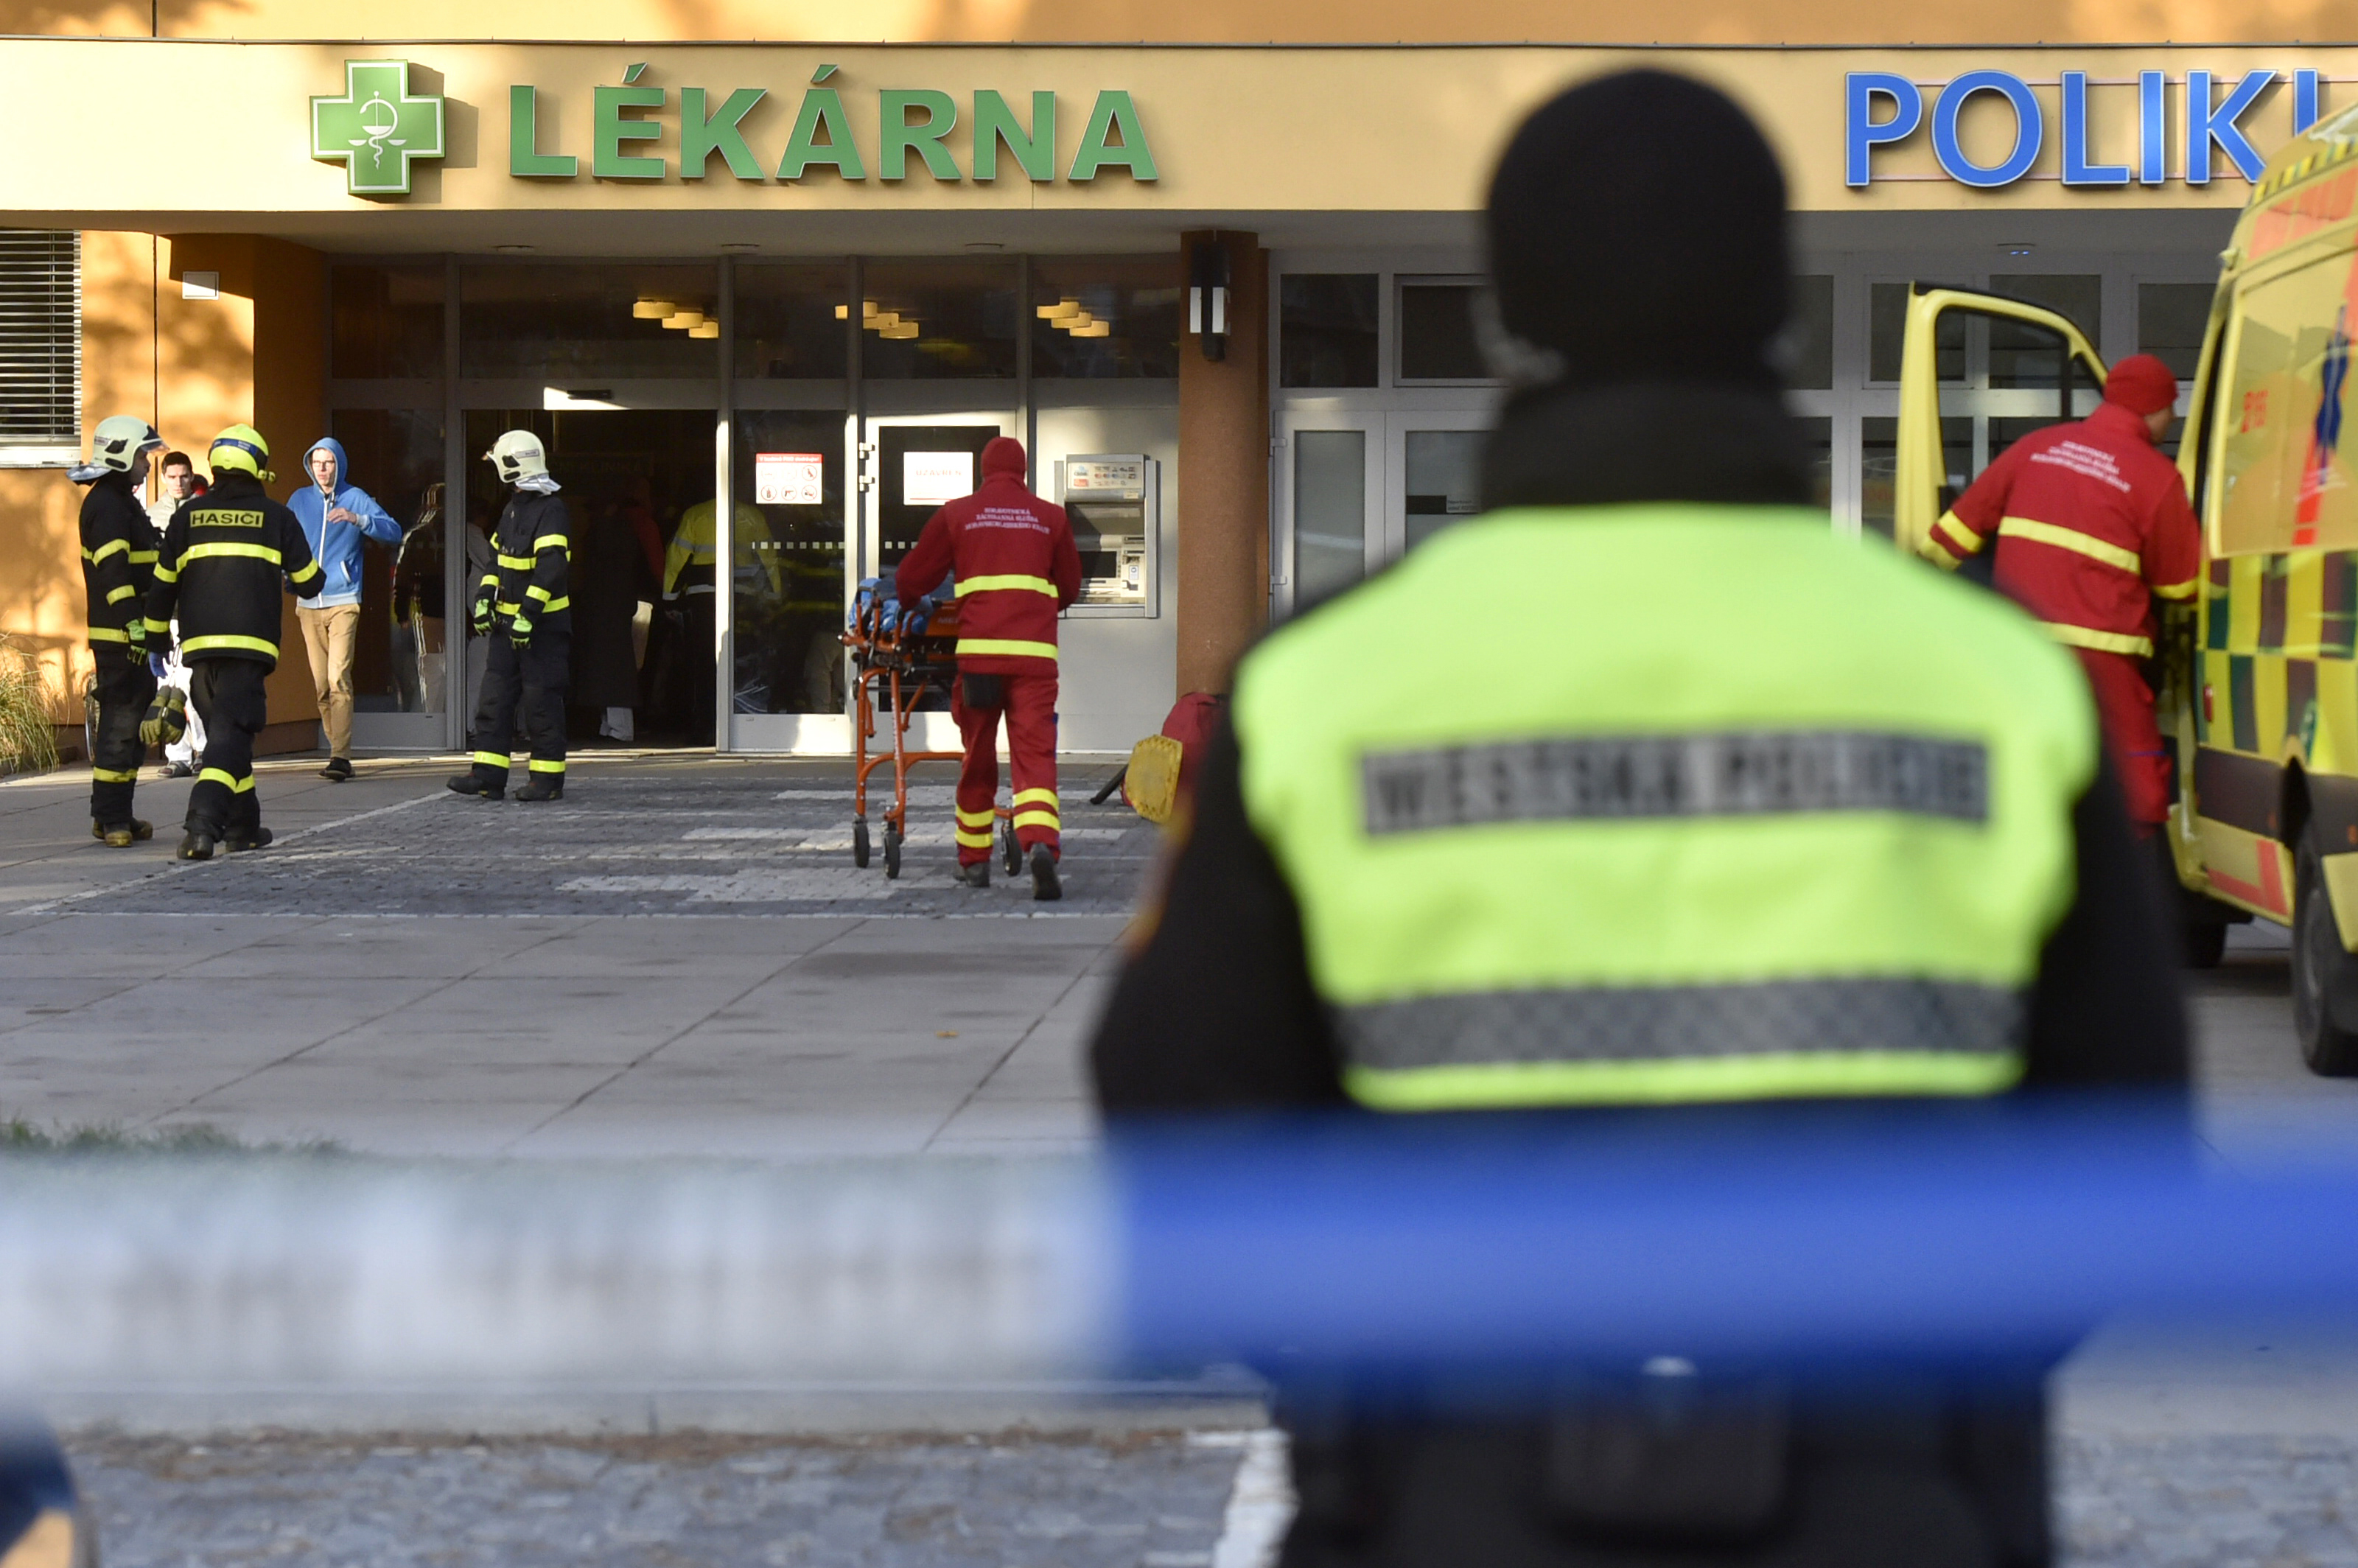 Firefighters, police officers and paramedics in front of the Ostrava Teaching Hospital, after a shooting incident in Ostava, Czech Republic, on Dec. 10, 2019.